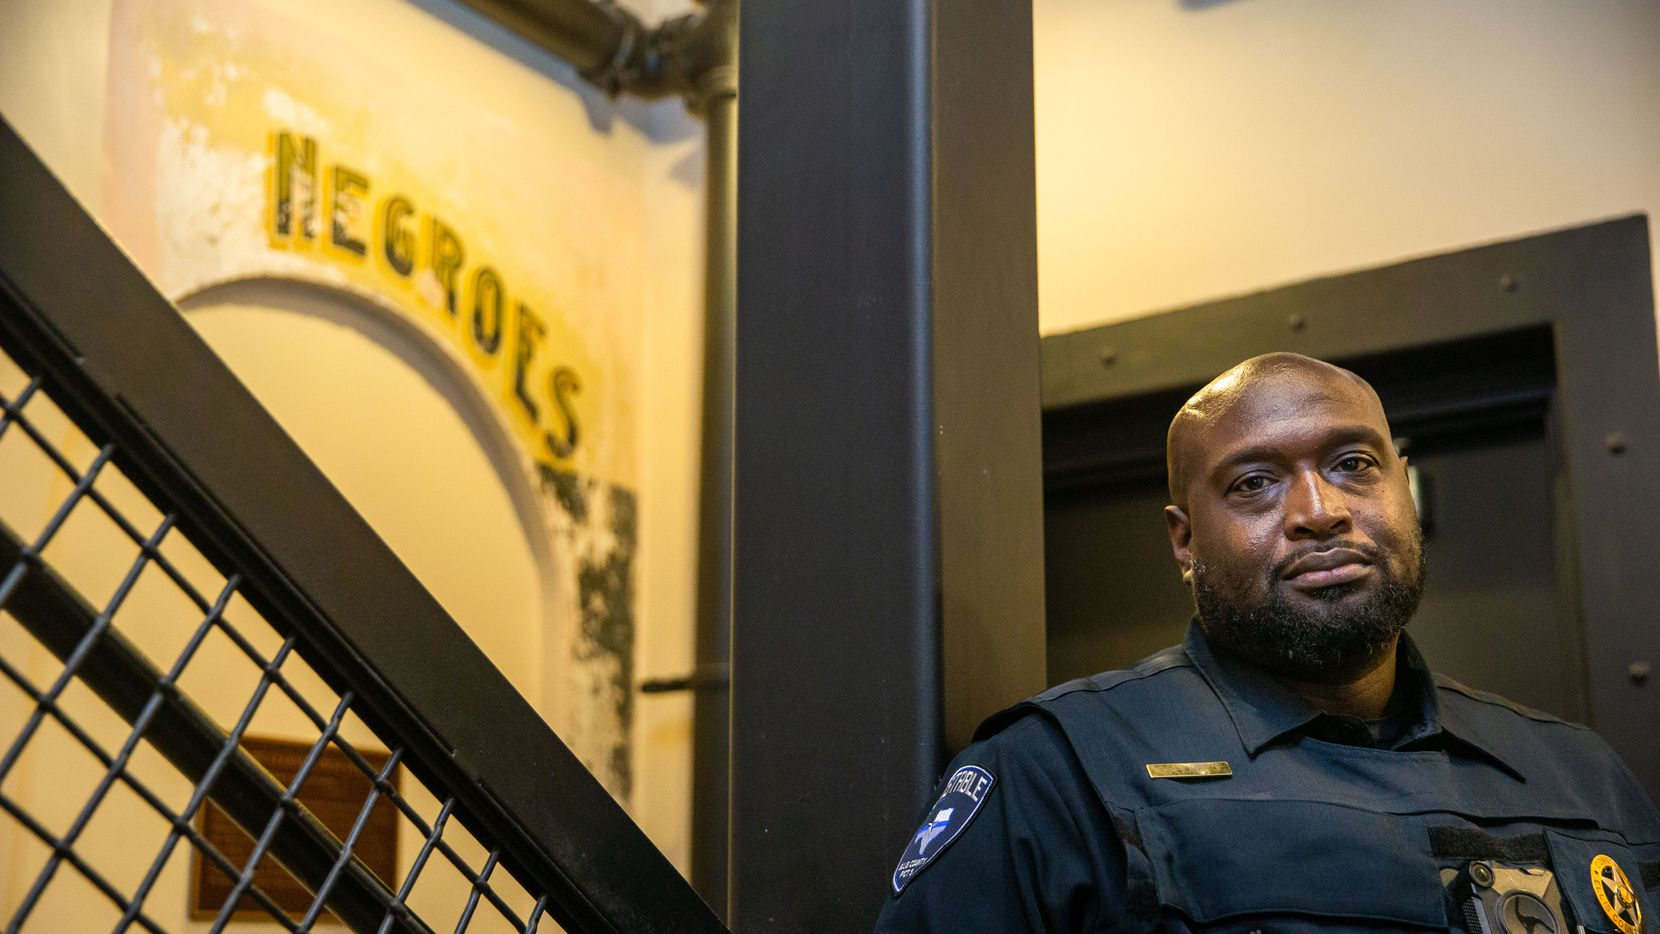 """Ellis County Constable Precinct 3 Curtis Polk Jr. poses for a photo at the Ellis County Courthouse in Waxahachie, Texas. His office was recently moved to a basement, where a segregation-era sign with the word """"negroes"""" is painted nearby."""